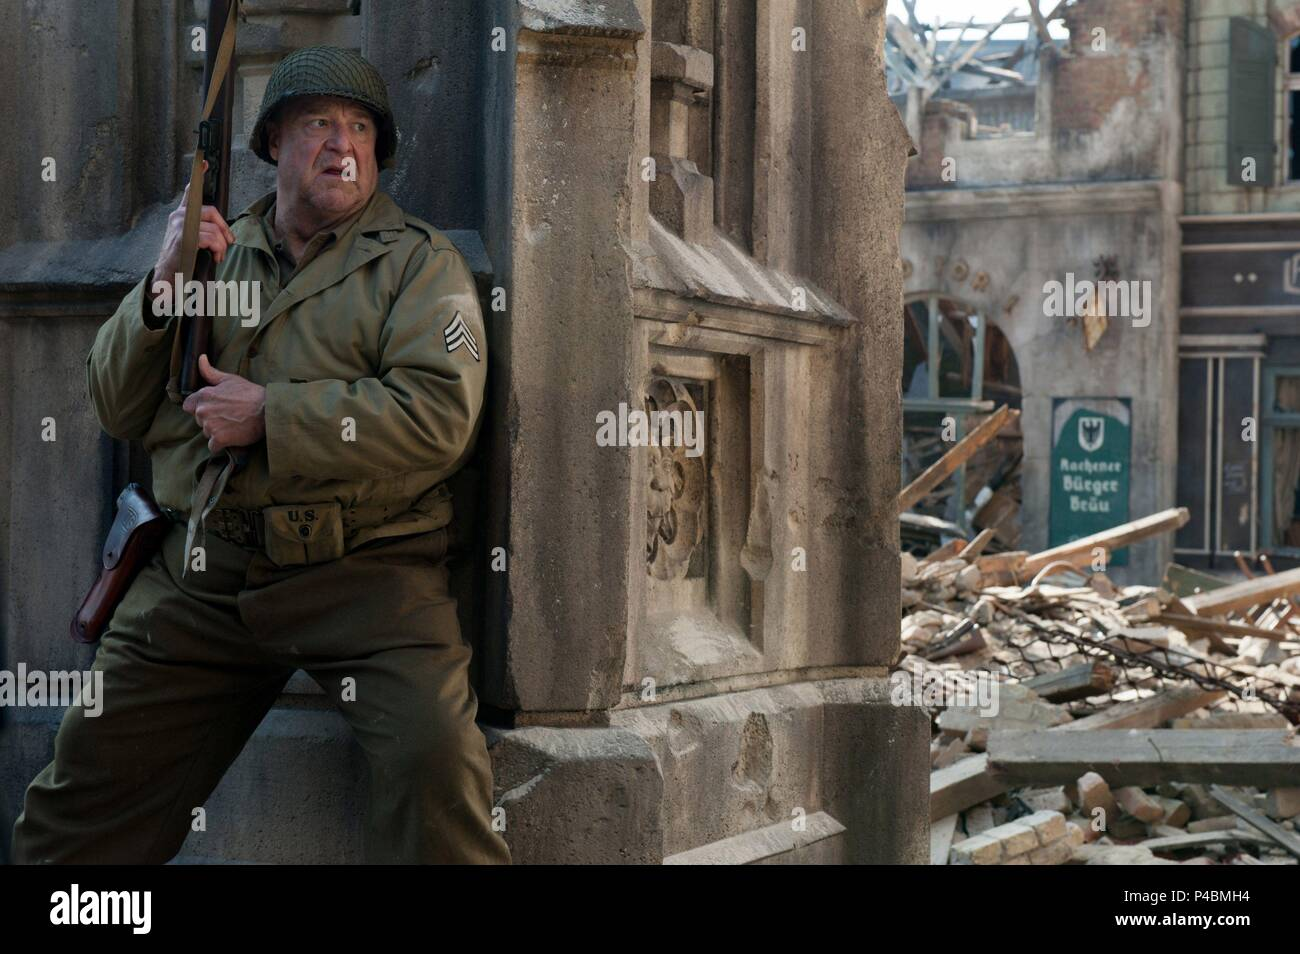 Monuments Men Film High Resolution Stock Photography And Images Alamy